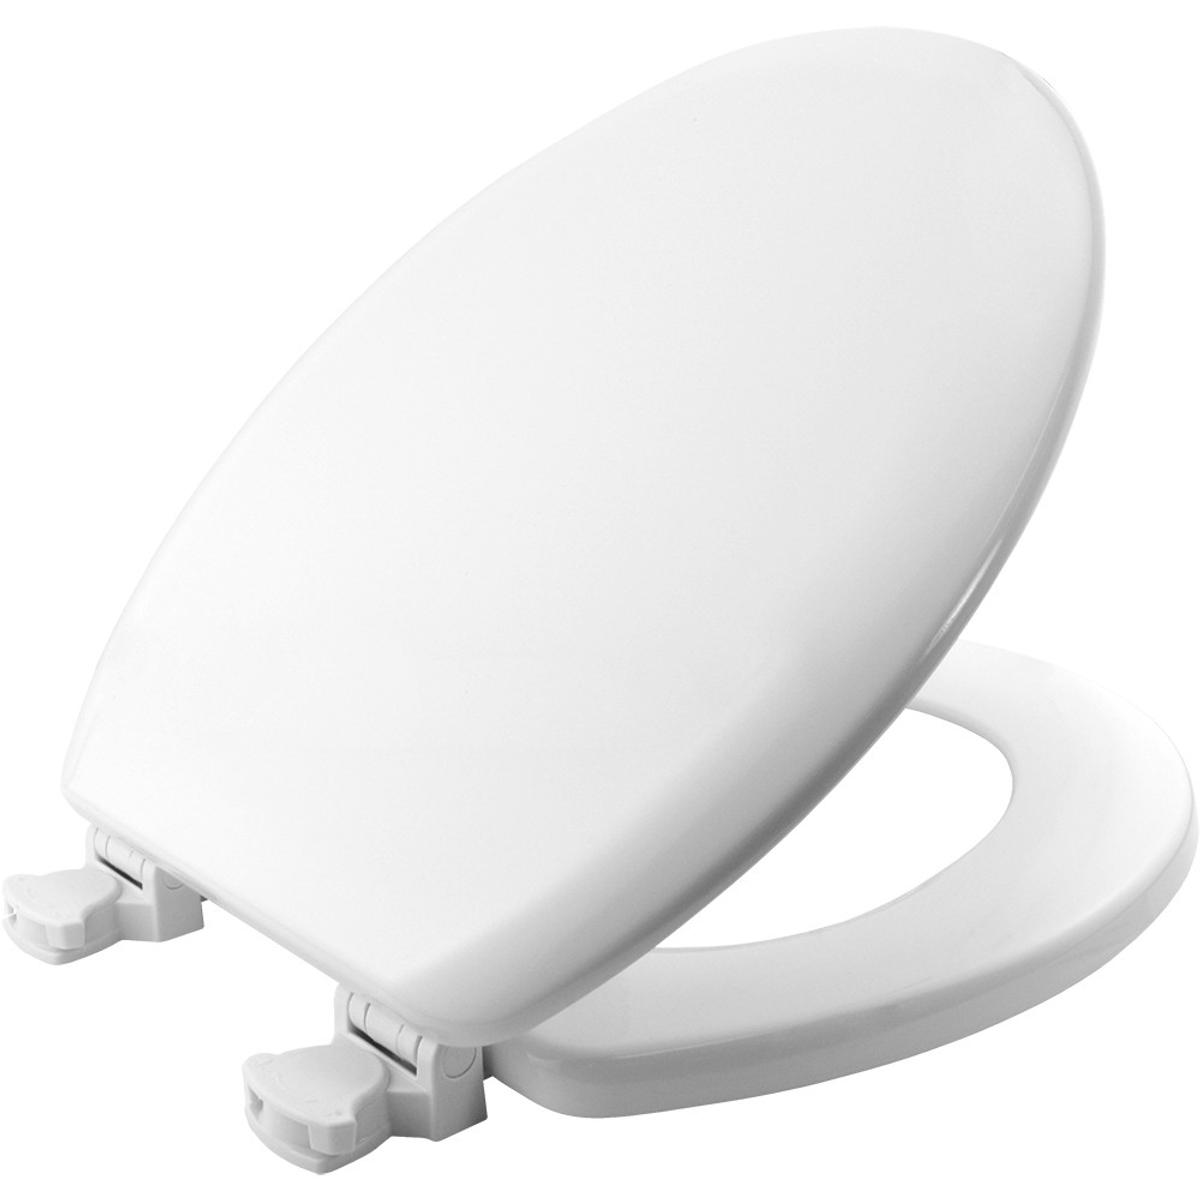 Peachy Bemis Toilet Seat With Smartlift Take Off In B11 Birmingham Pabps2019 Chair Design Images Pabps2019Com